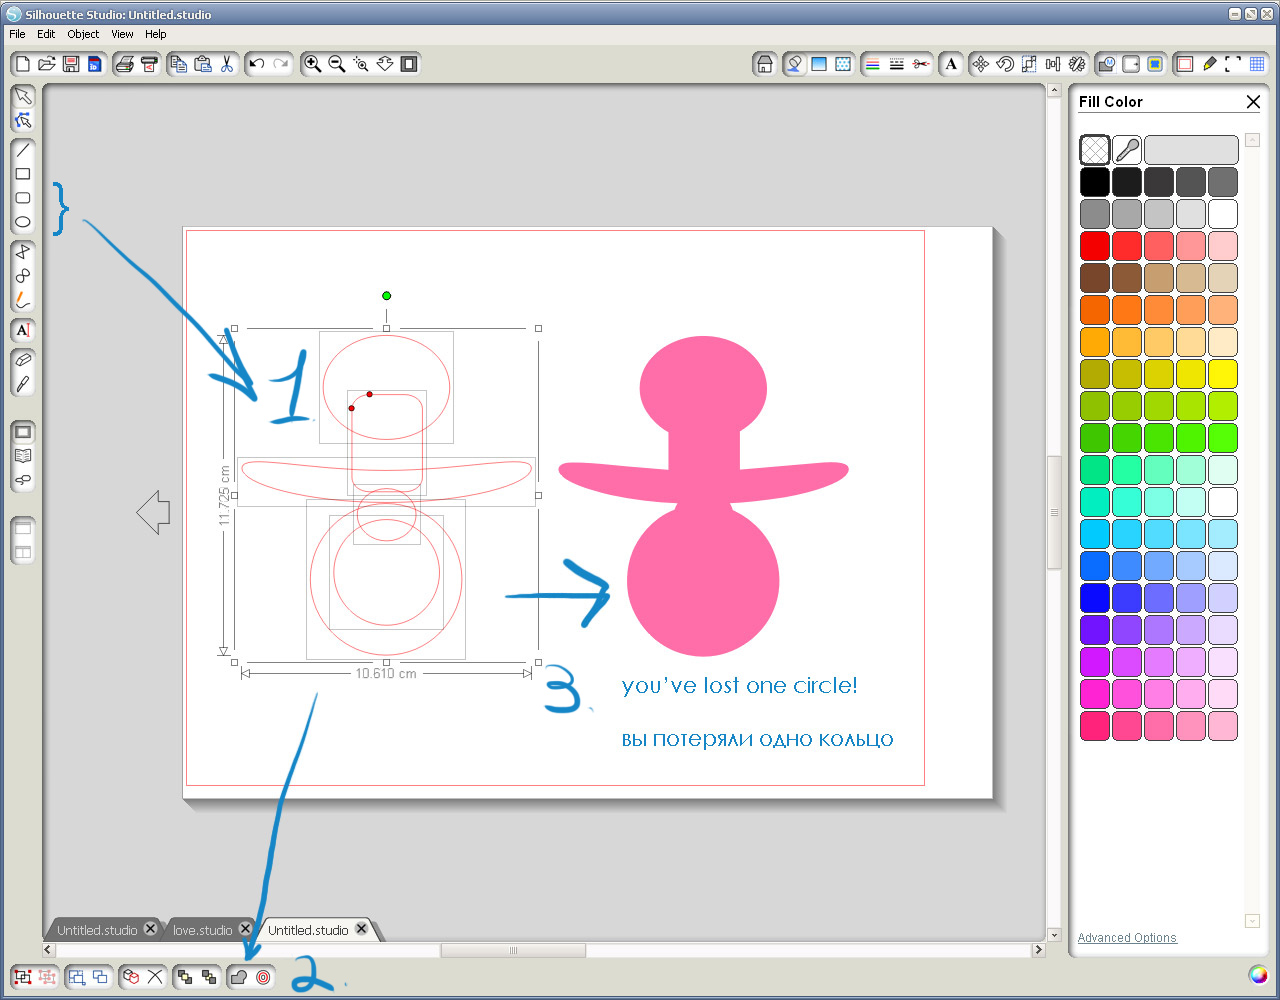 How to Draw in Silhouette Studio